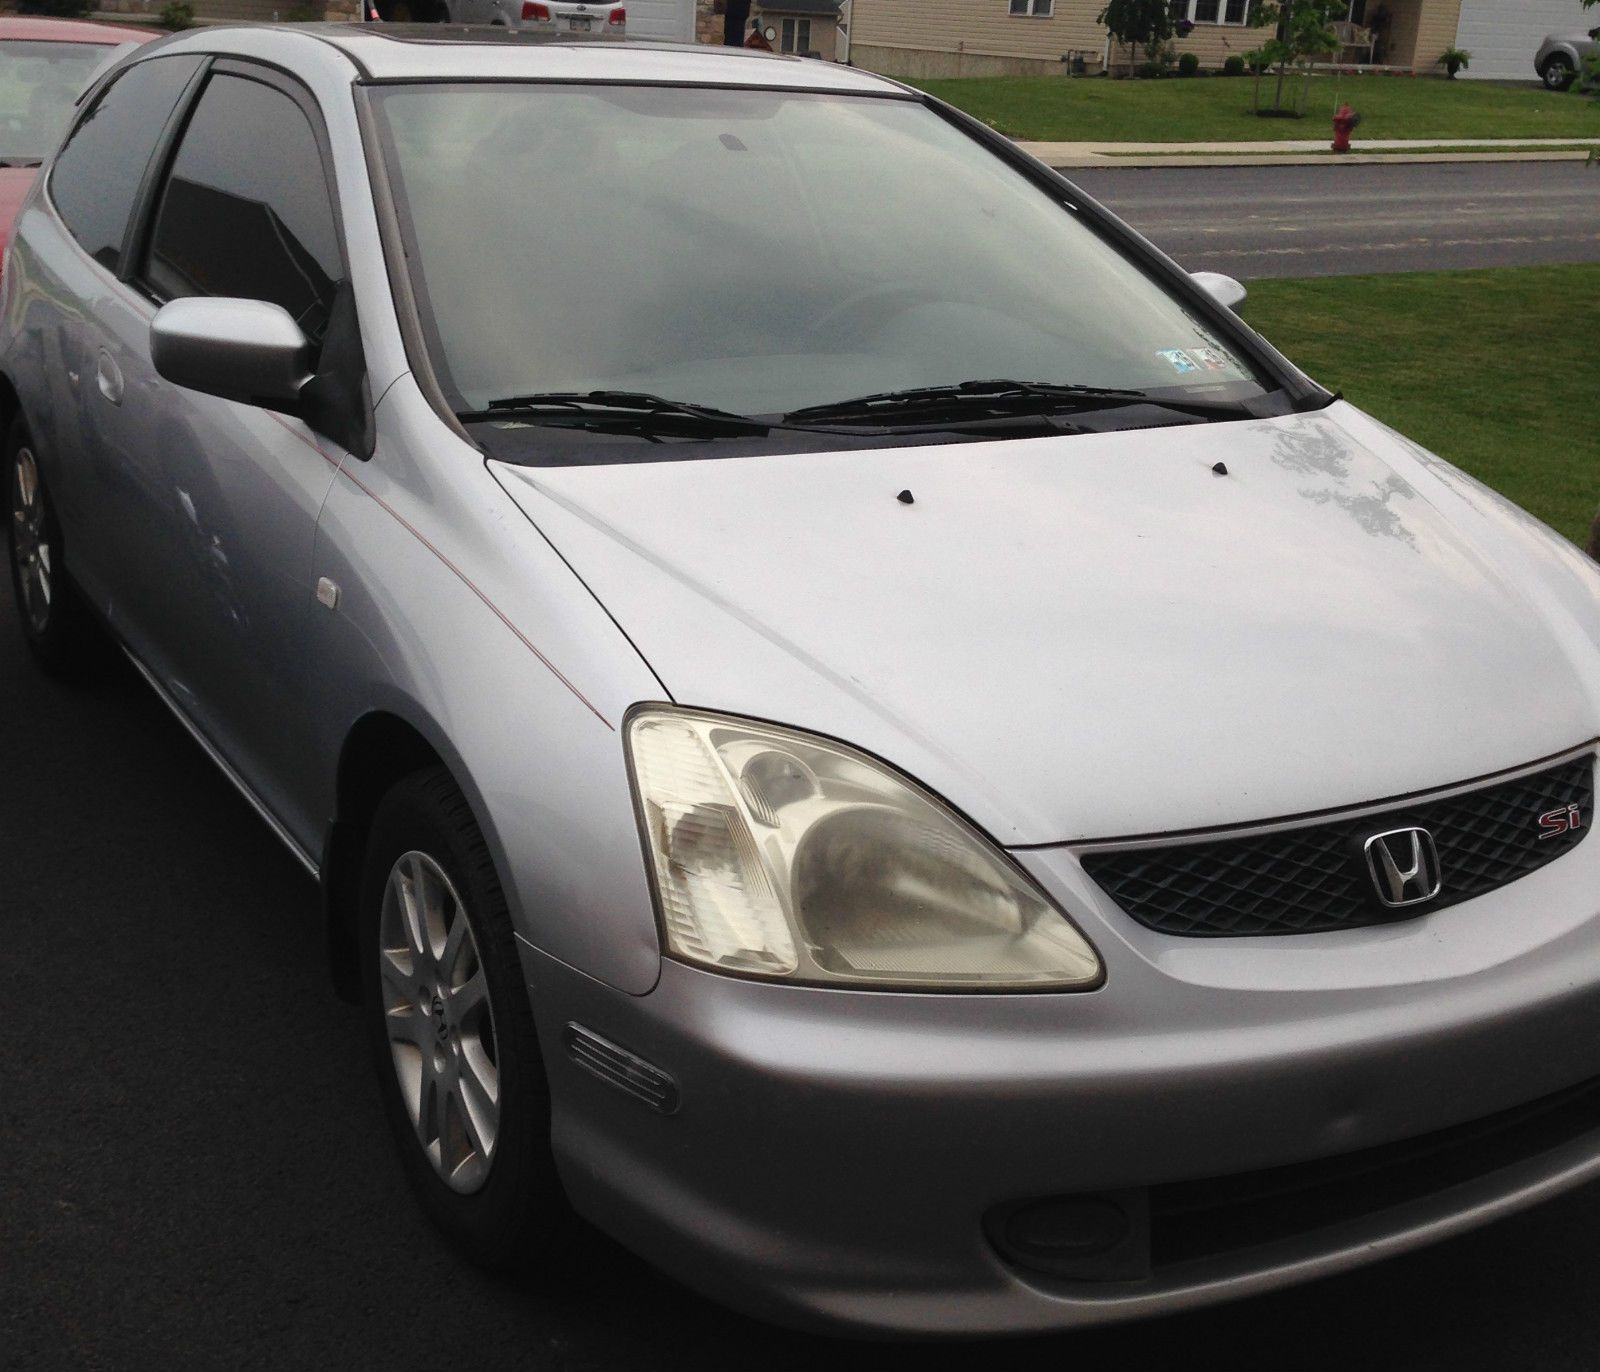 Car Brand Auctioned Honda Civic Si Hatchback 3 Door 2002 Car Model Honda Civic Si V Tech Hatchback Auctio Honda Civic Si Hatchback Honda Civic Si Honda Civic